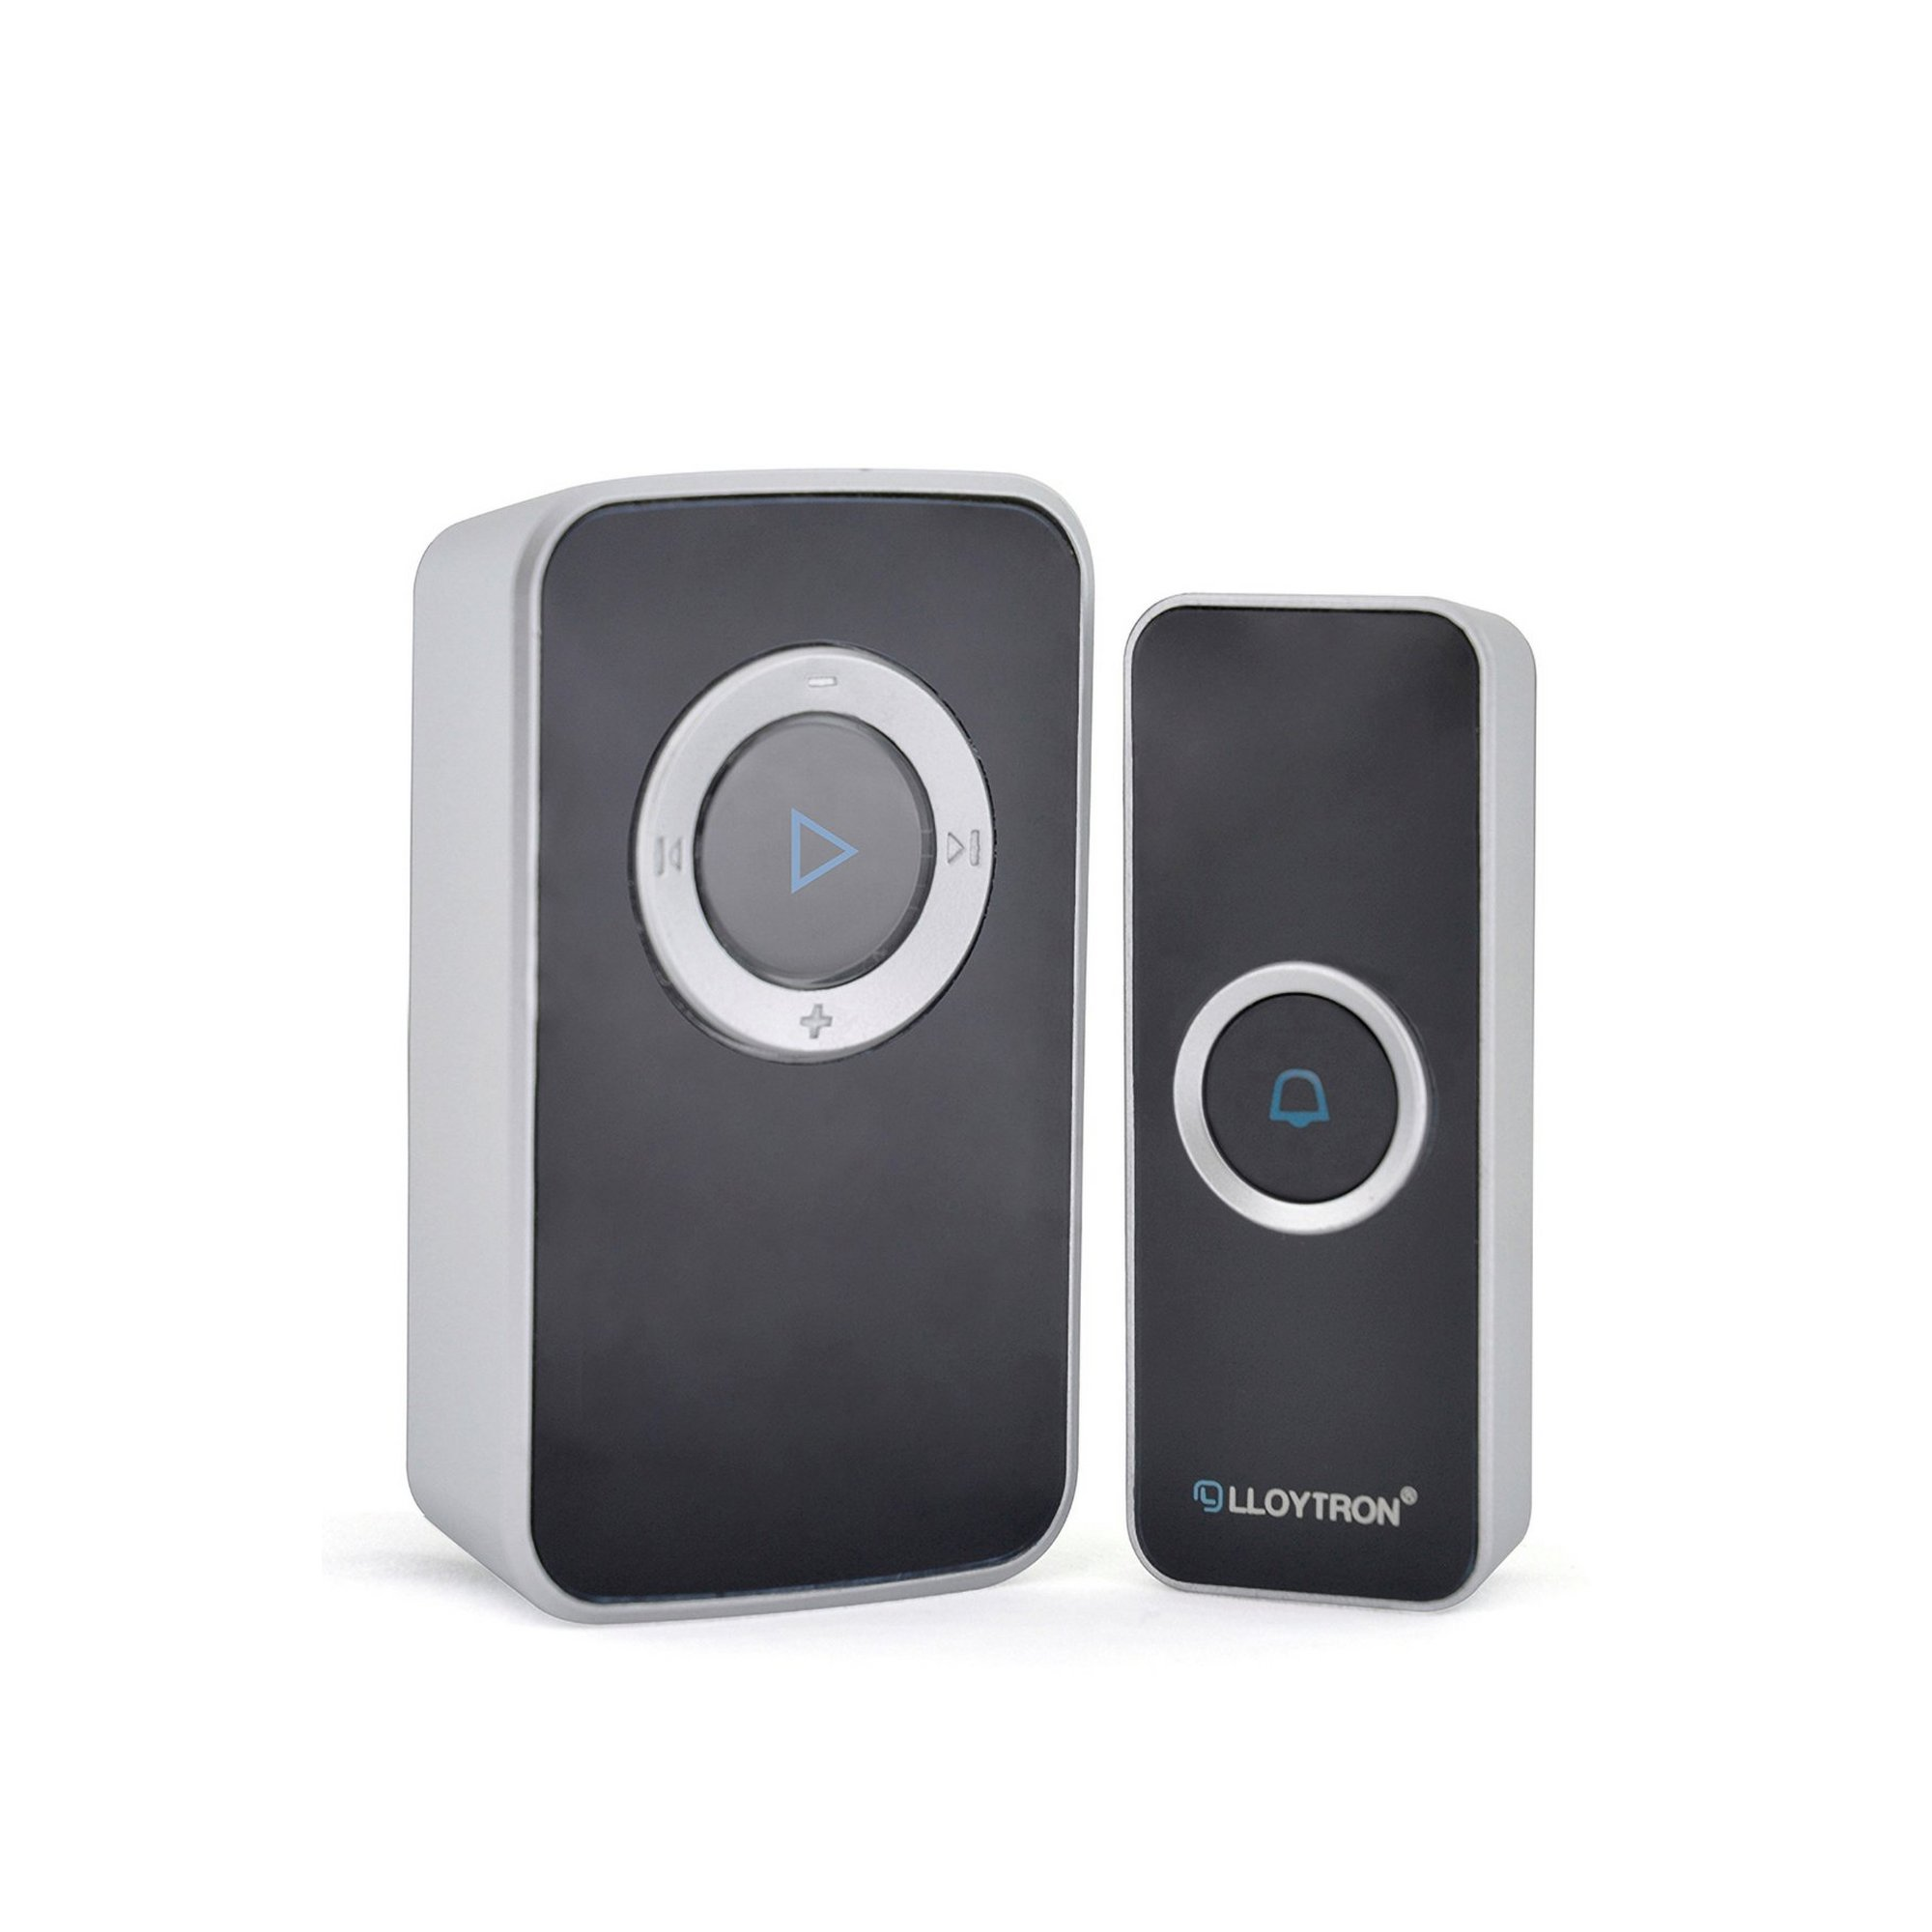 Image of Lloytron Melody MIP3 Lithium Rechargeable Portable Door Chime Kit